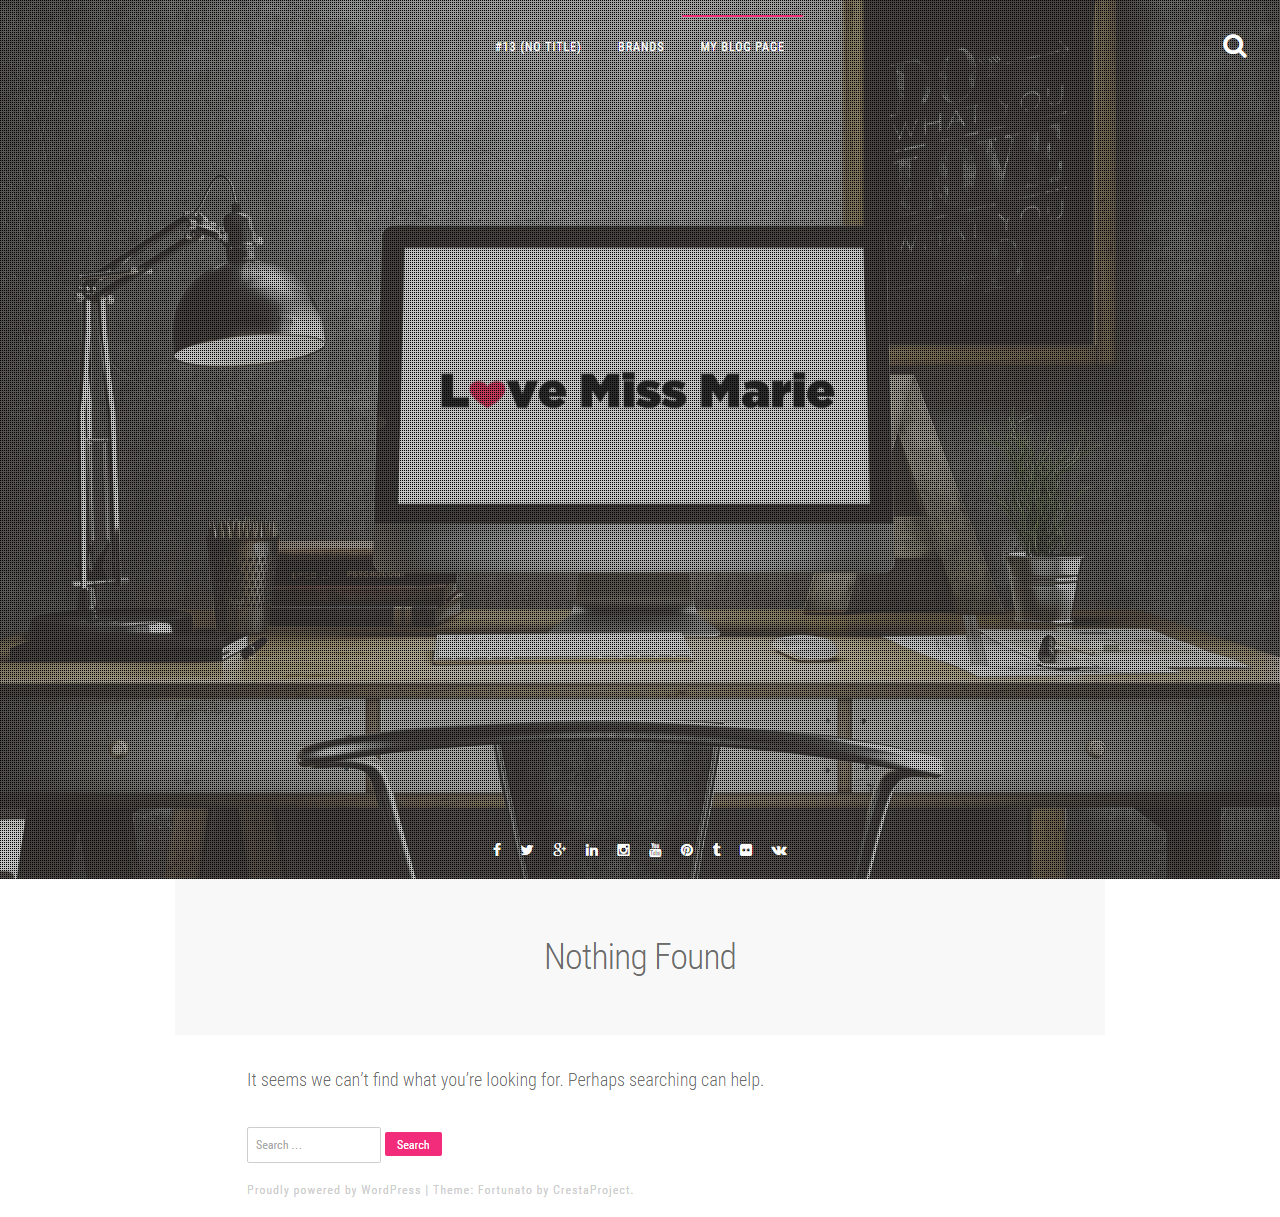 LOVE MISS MARIE [Responsive]